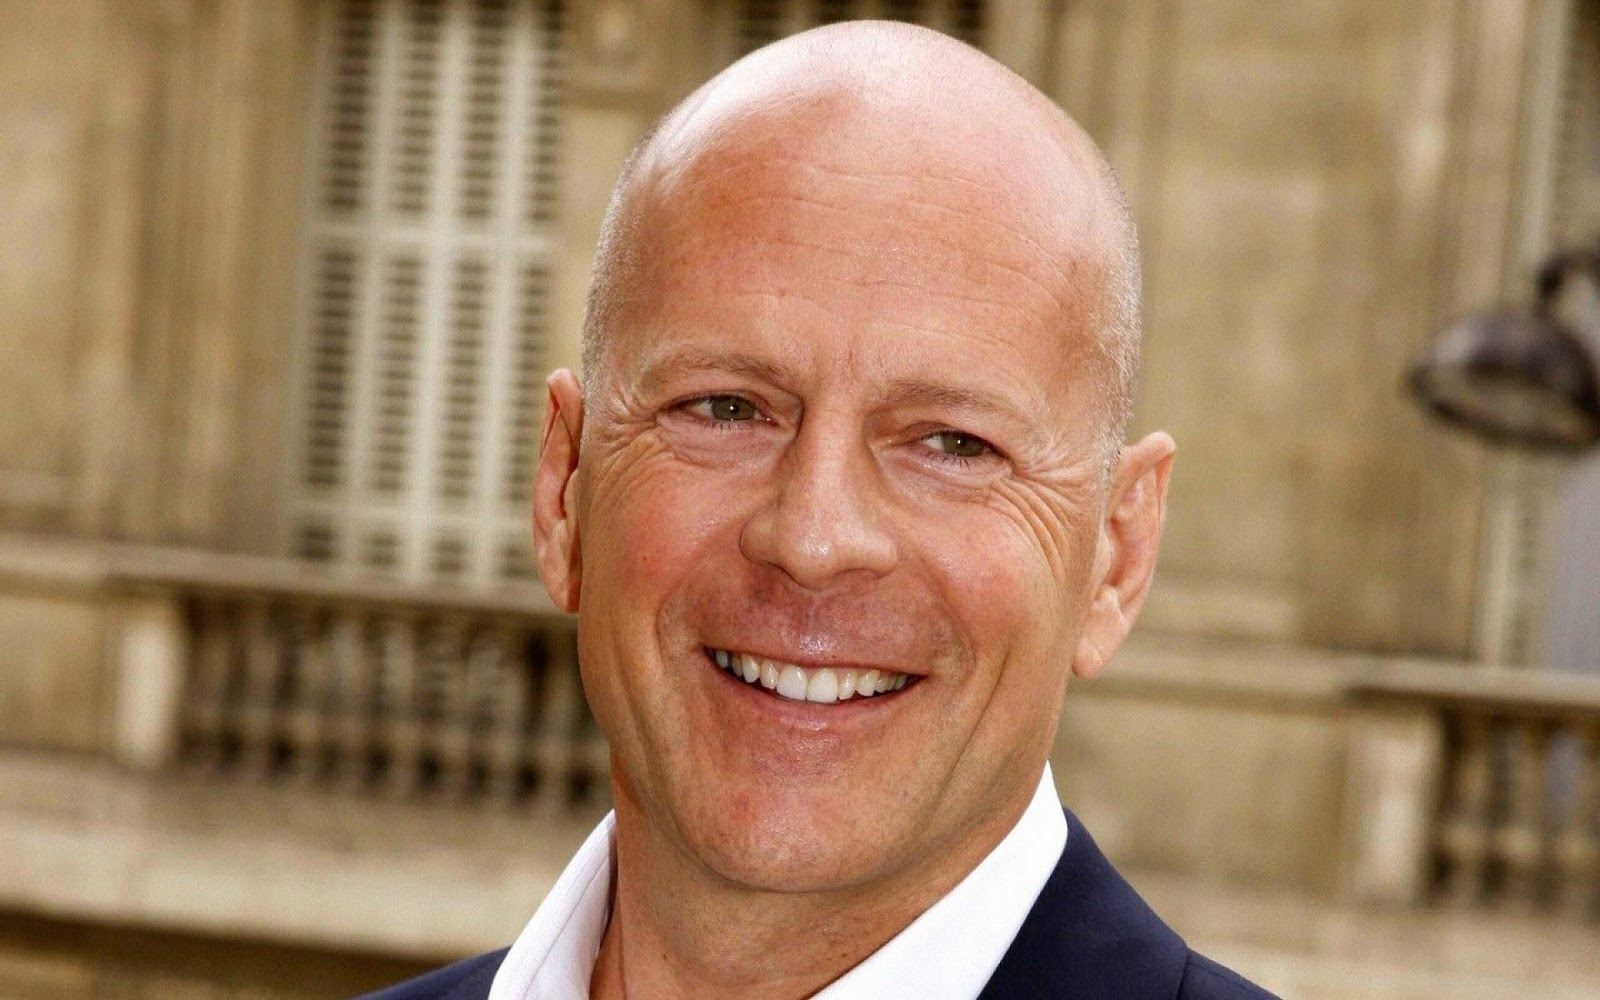 Bruce Willis Wallpapers - Best HD Desktop Wallpaper Bruce Willis